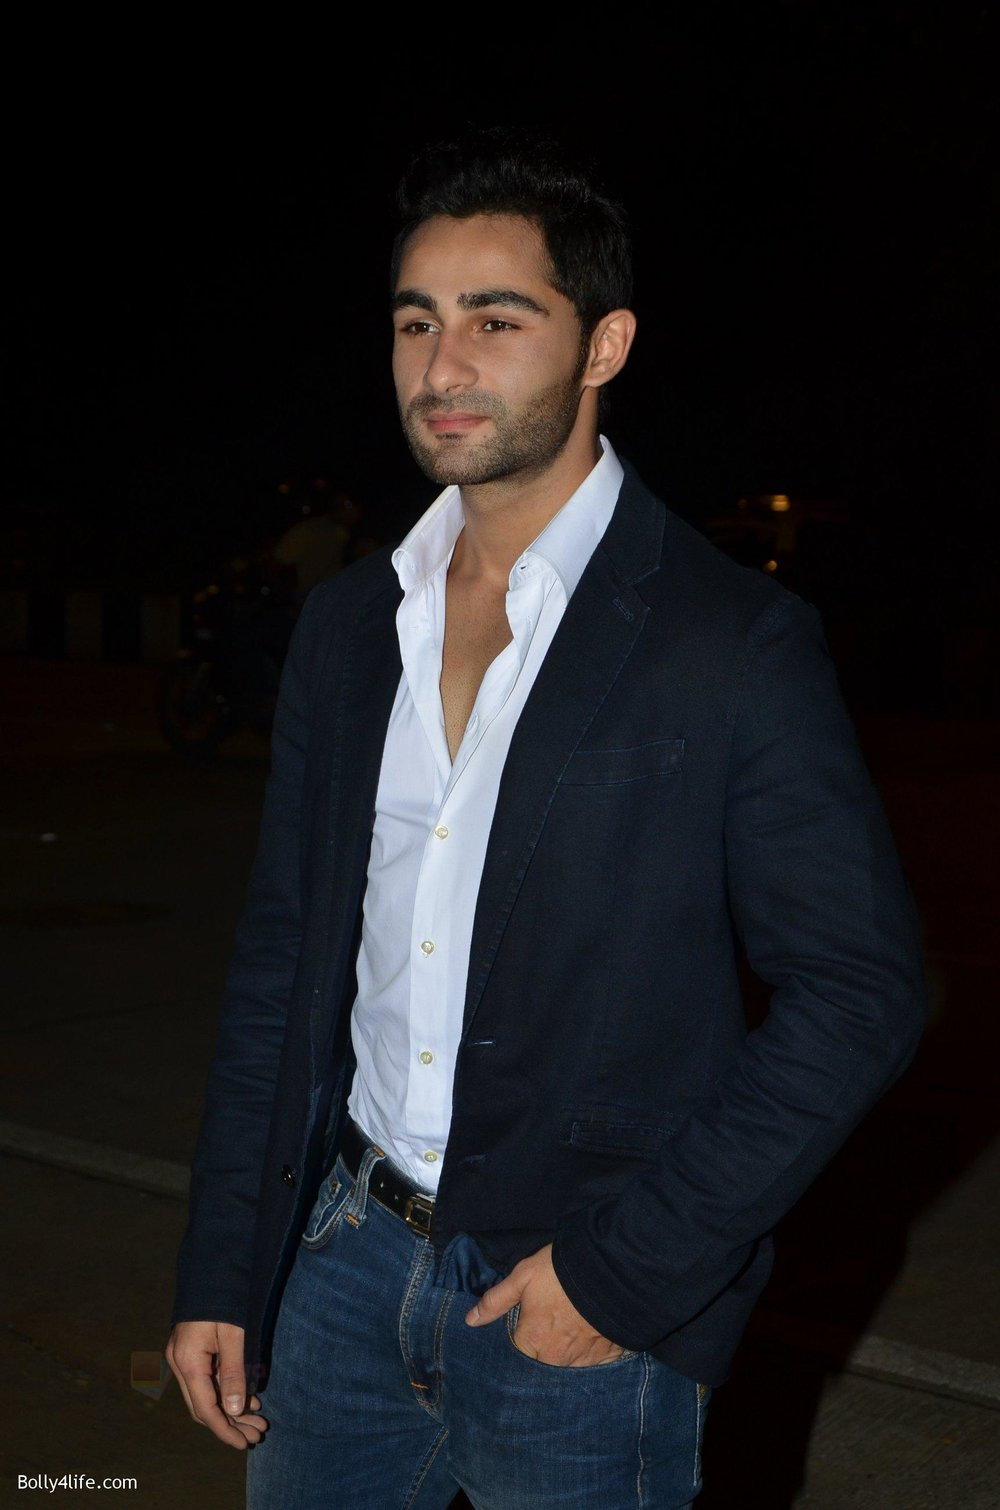 Armaan-Jain-at-Reema-jain-bday-party-in-Amadeus-NCPA-on-28th-Sept-2016-634.jpg